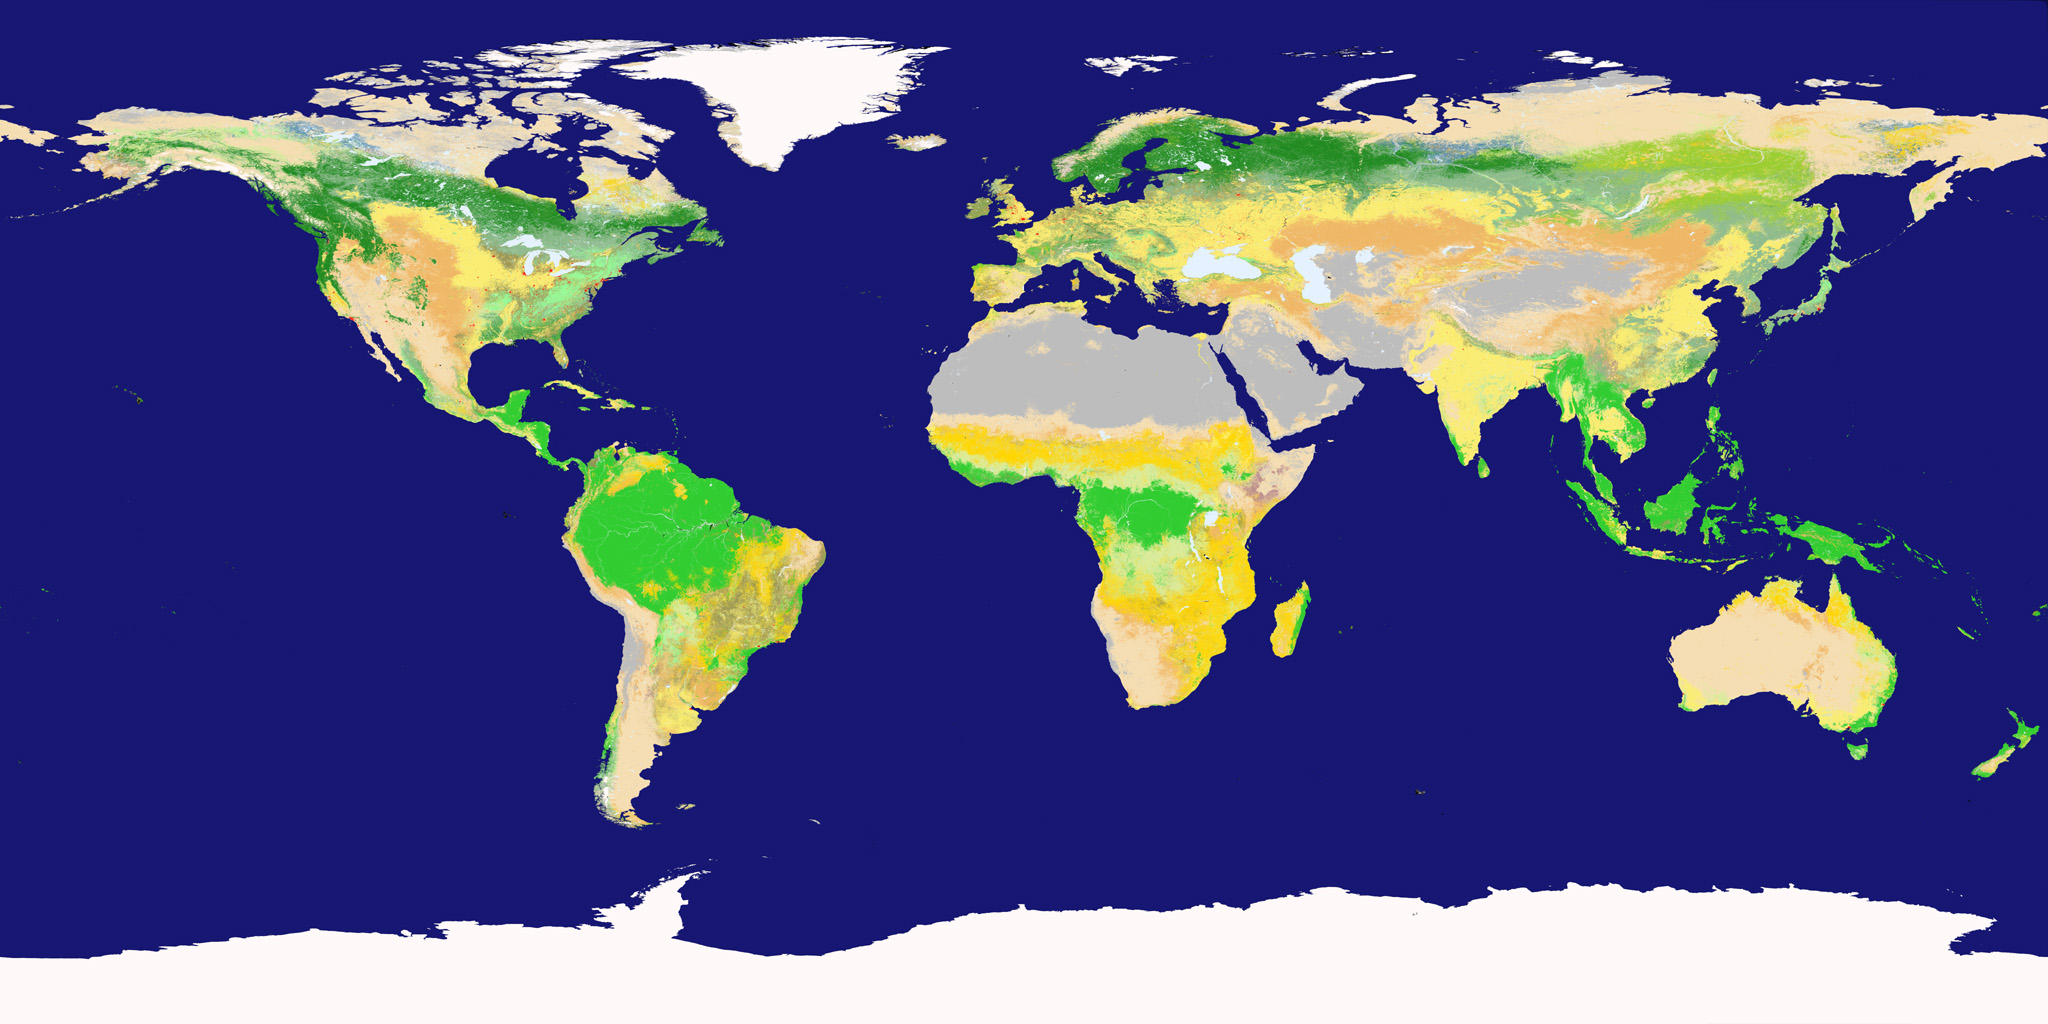 Nasa Visible Earth New Land Cover Classification Maps